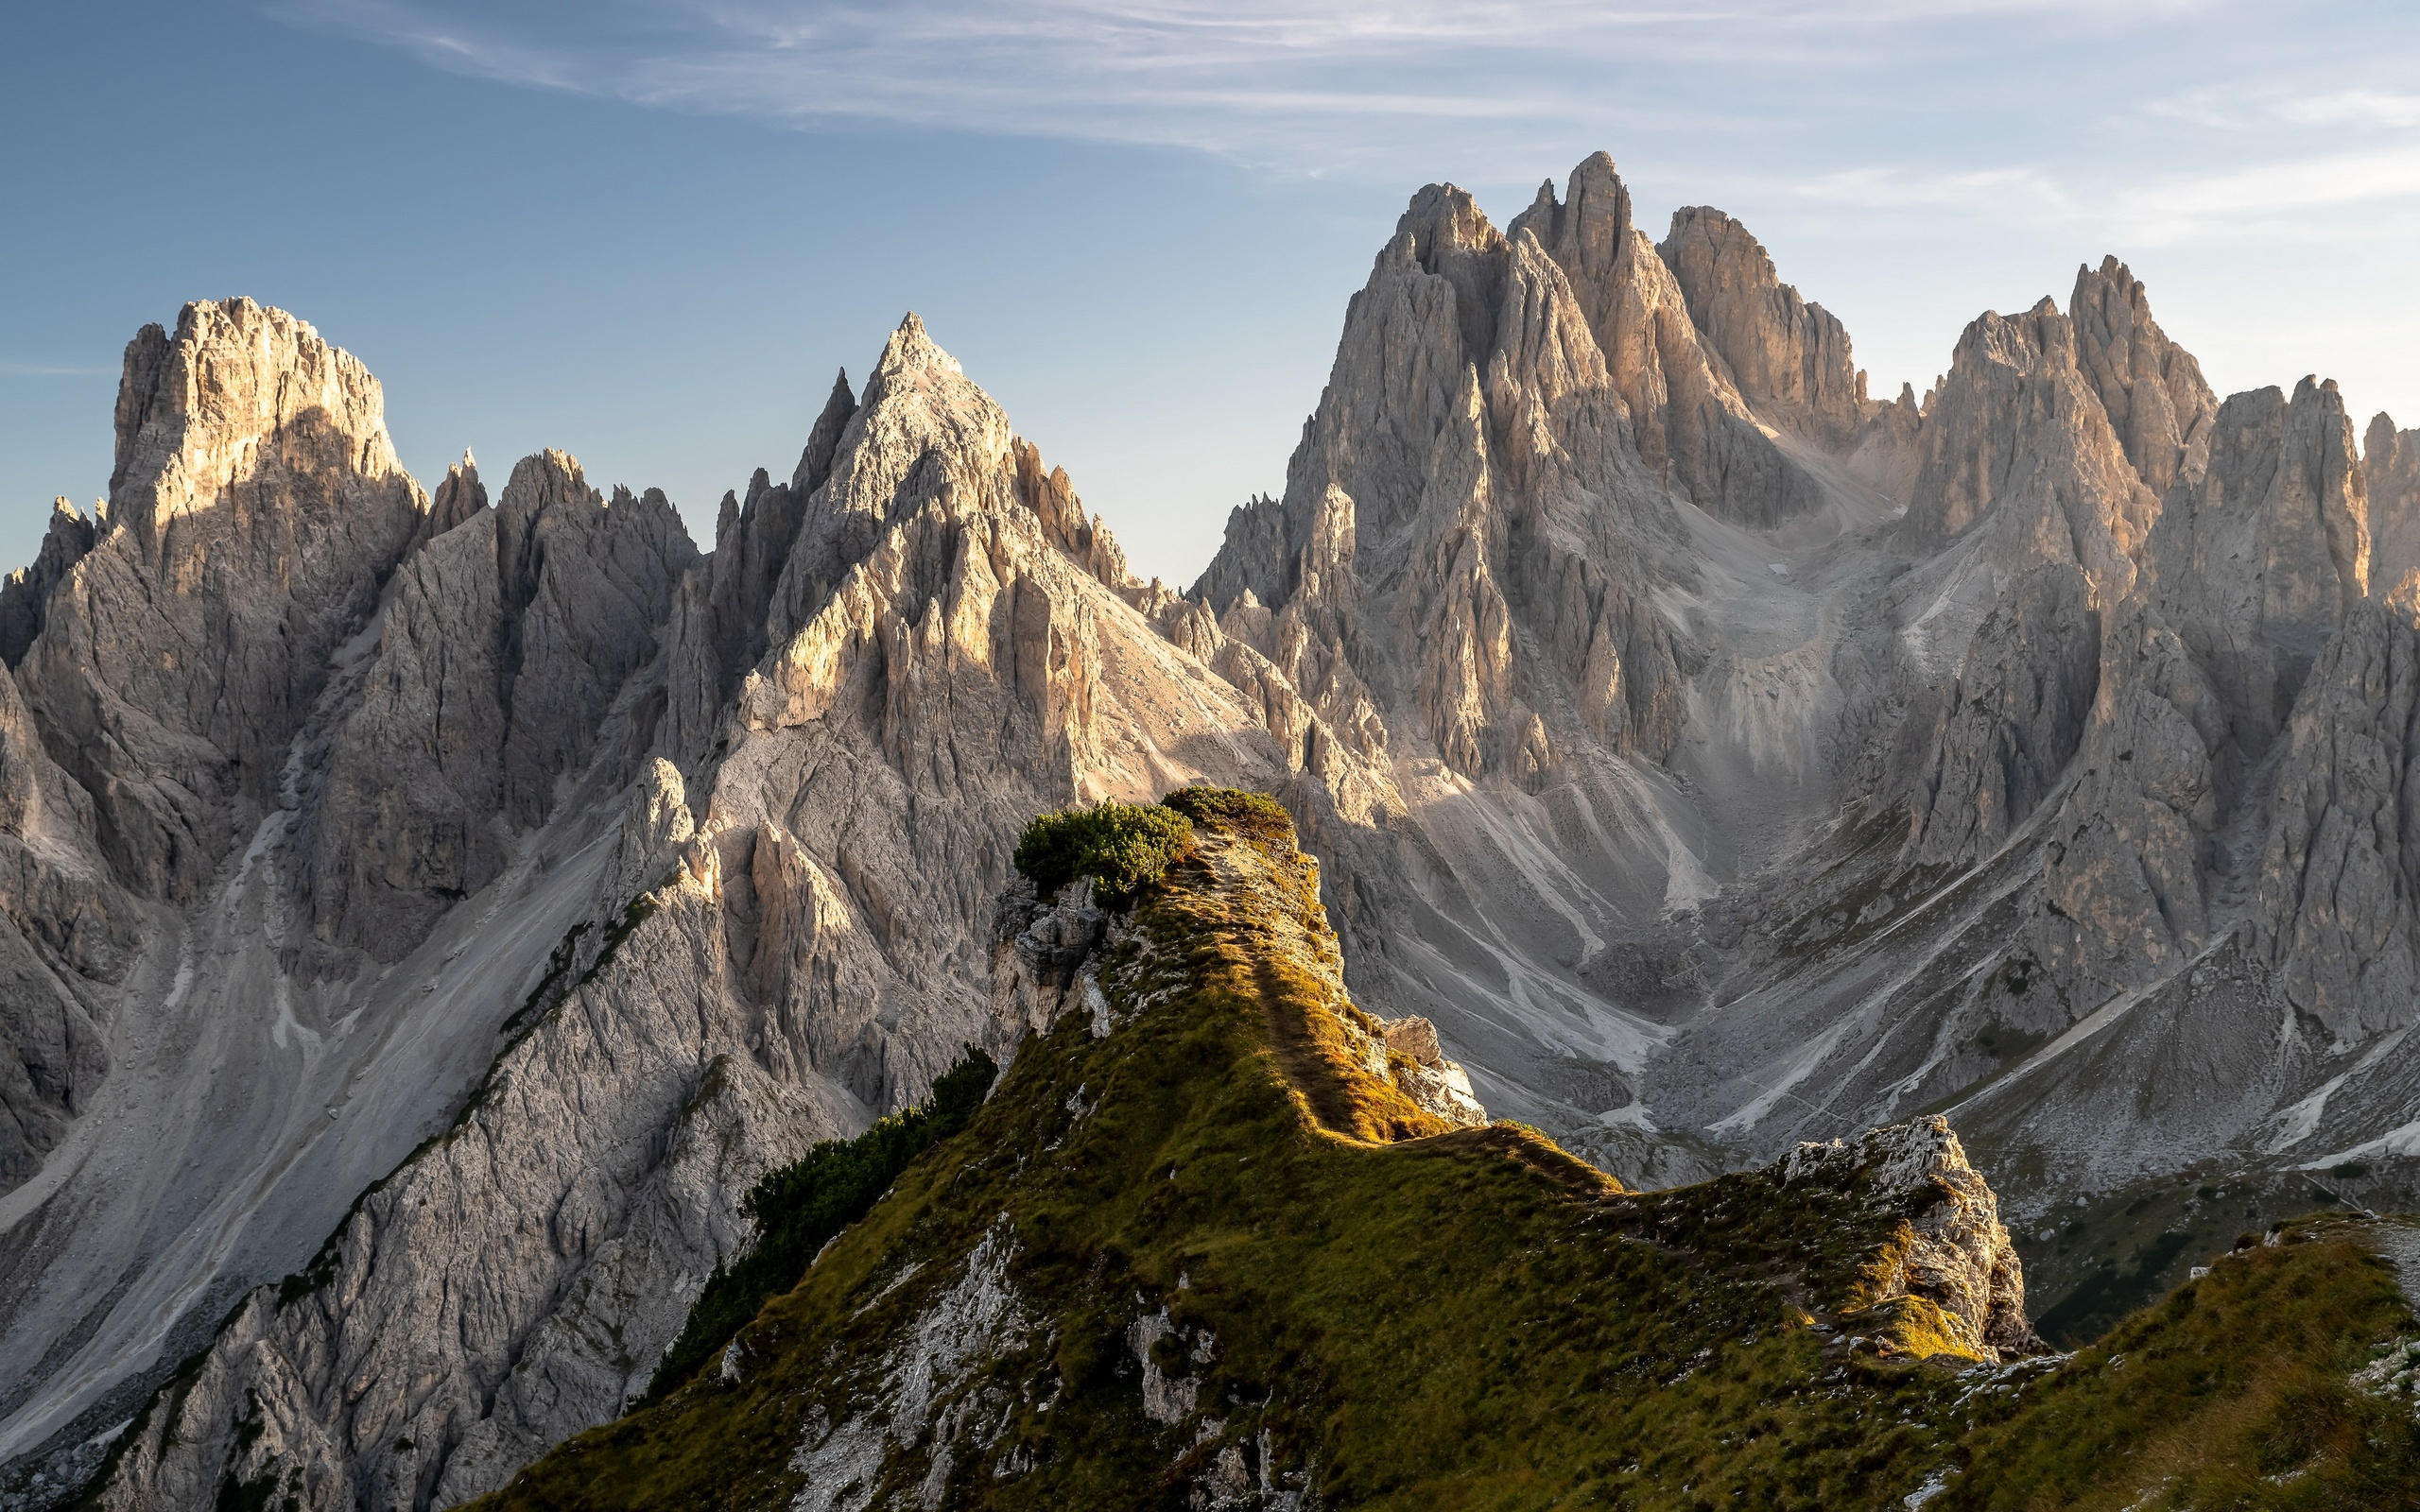 dolomite-mountains-in-italy-4k-gs.jpg